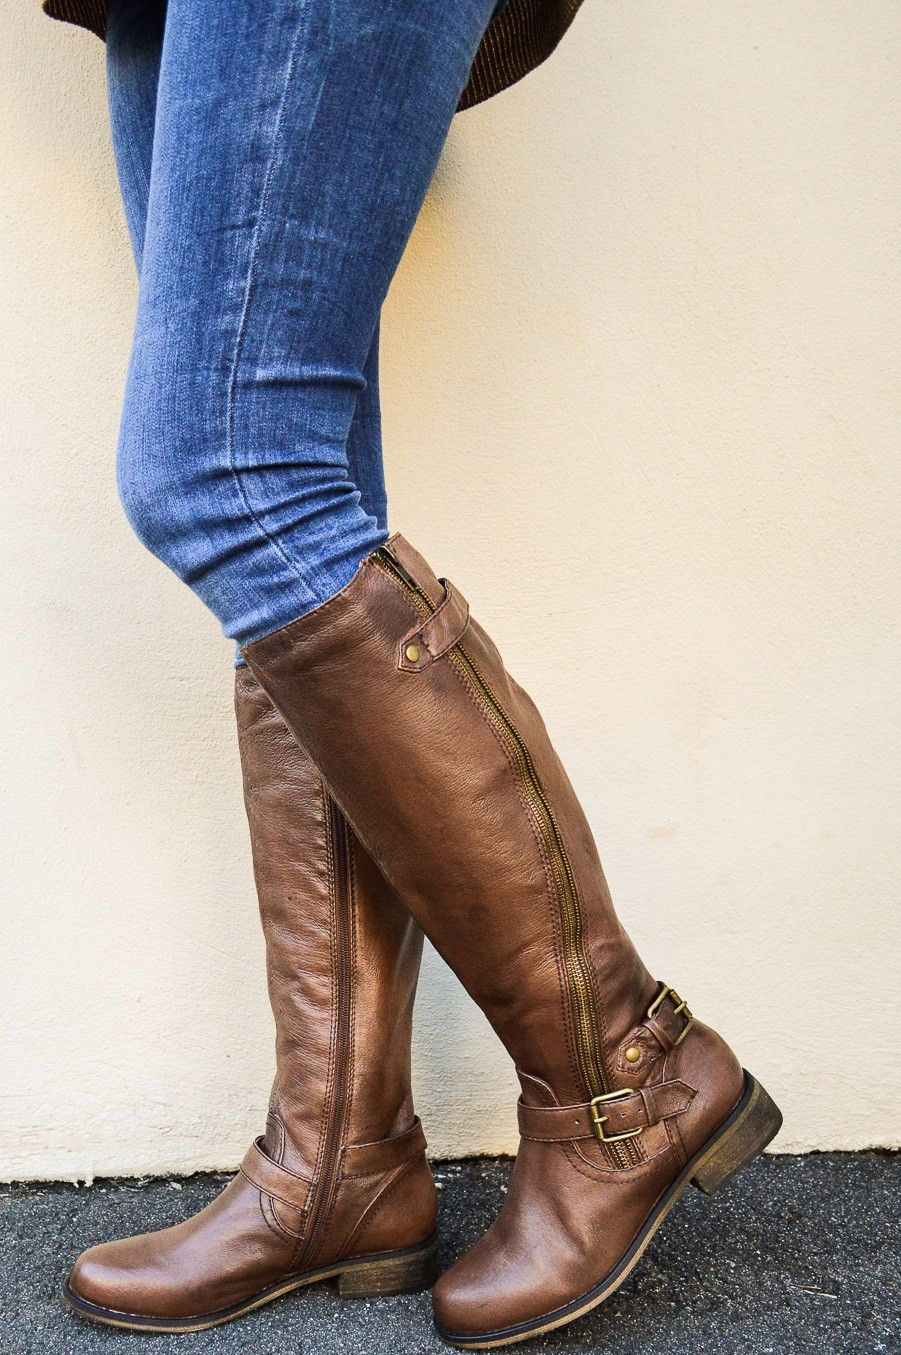 Steve Madden Synicle Brown leather riding boots | Boots